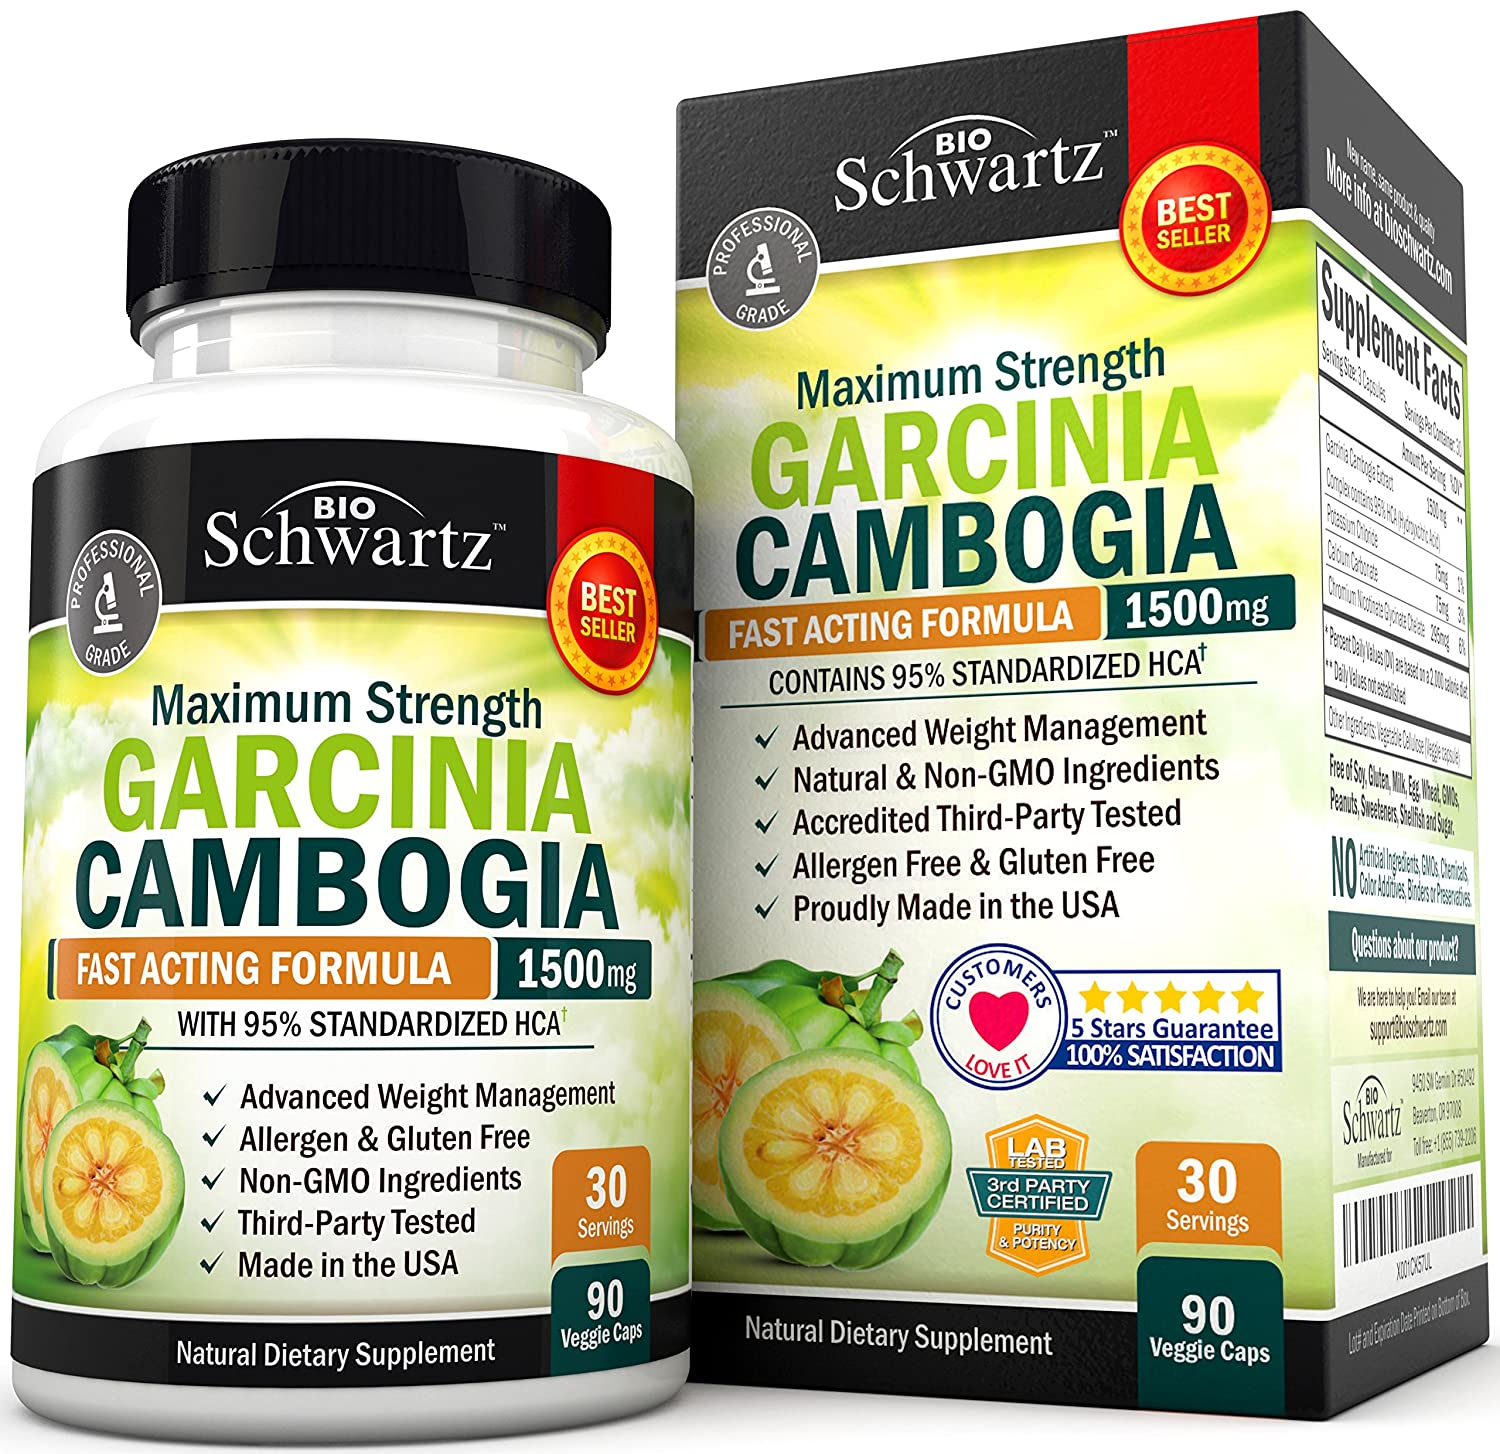 Garcinia Cambogia 95 HCA Pure Extract with Chromium. Fast Acting Appetite Suppressant, Extreme Carb Blocker Fat Burner Supplement for Weight Loss Fat Metabolism Best Garcinia Cambogia Diet Pills